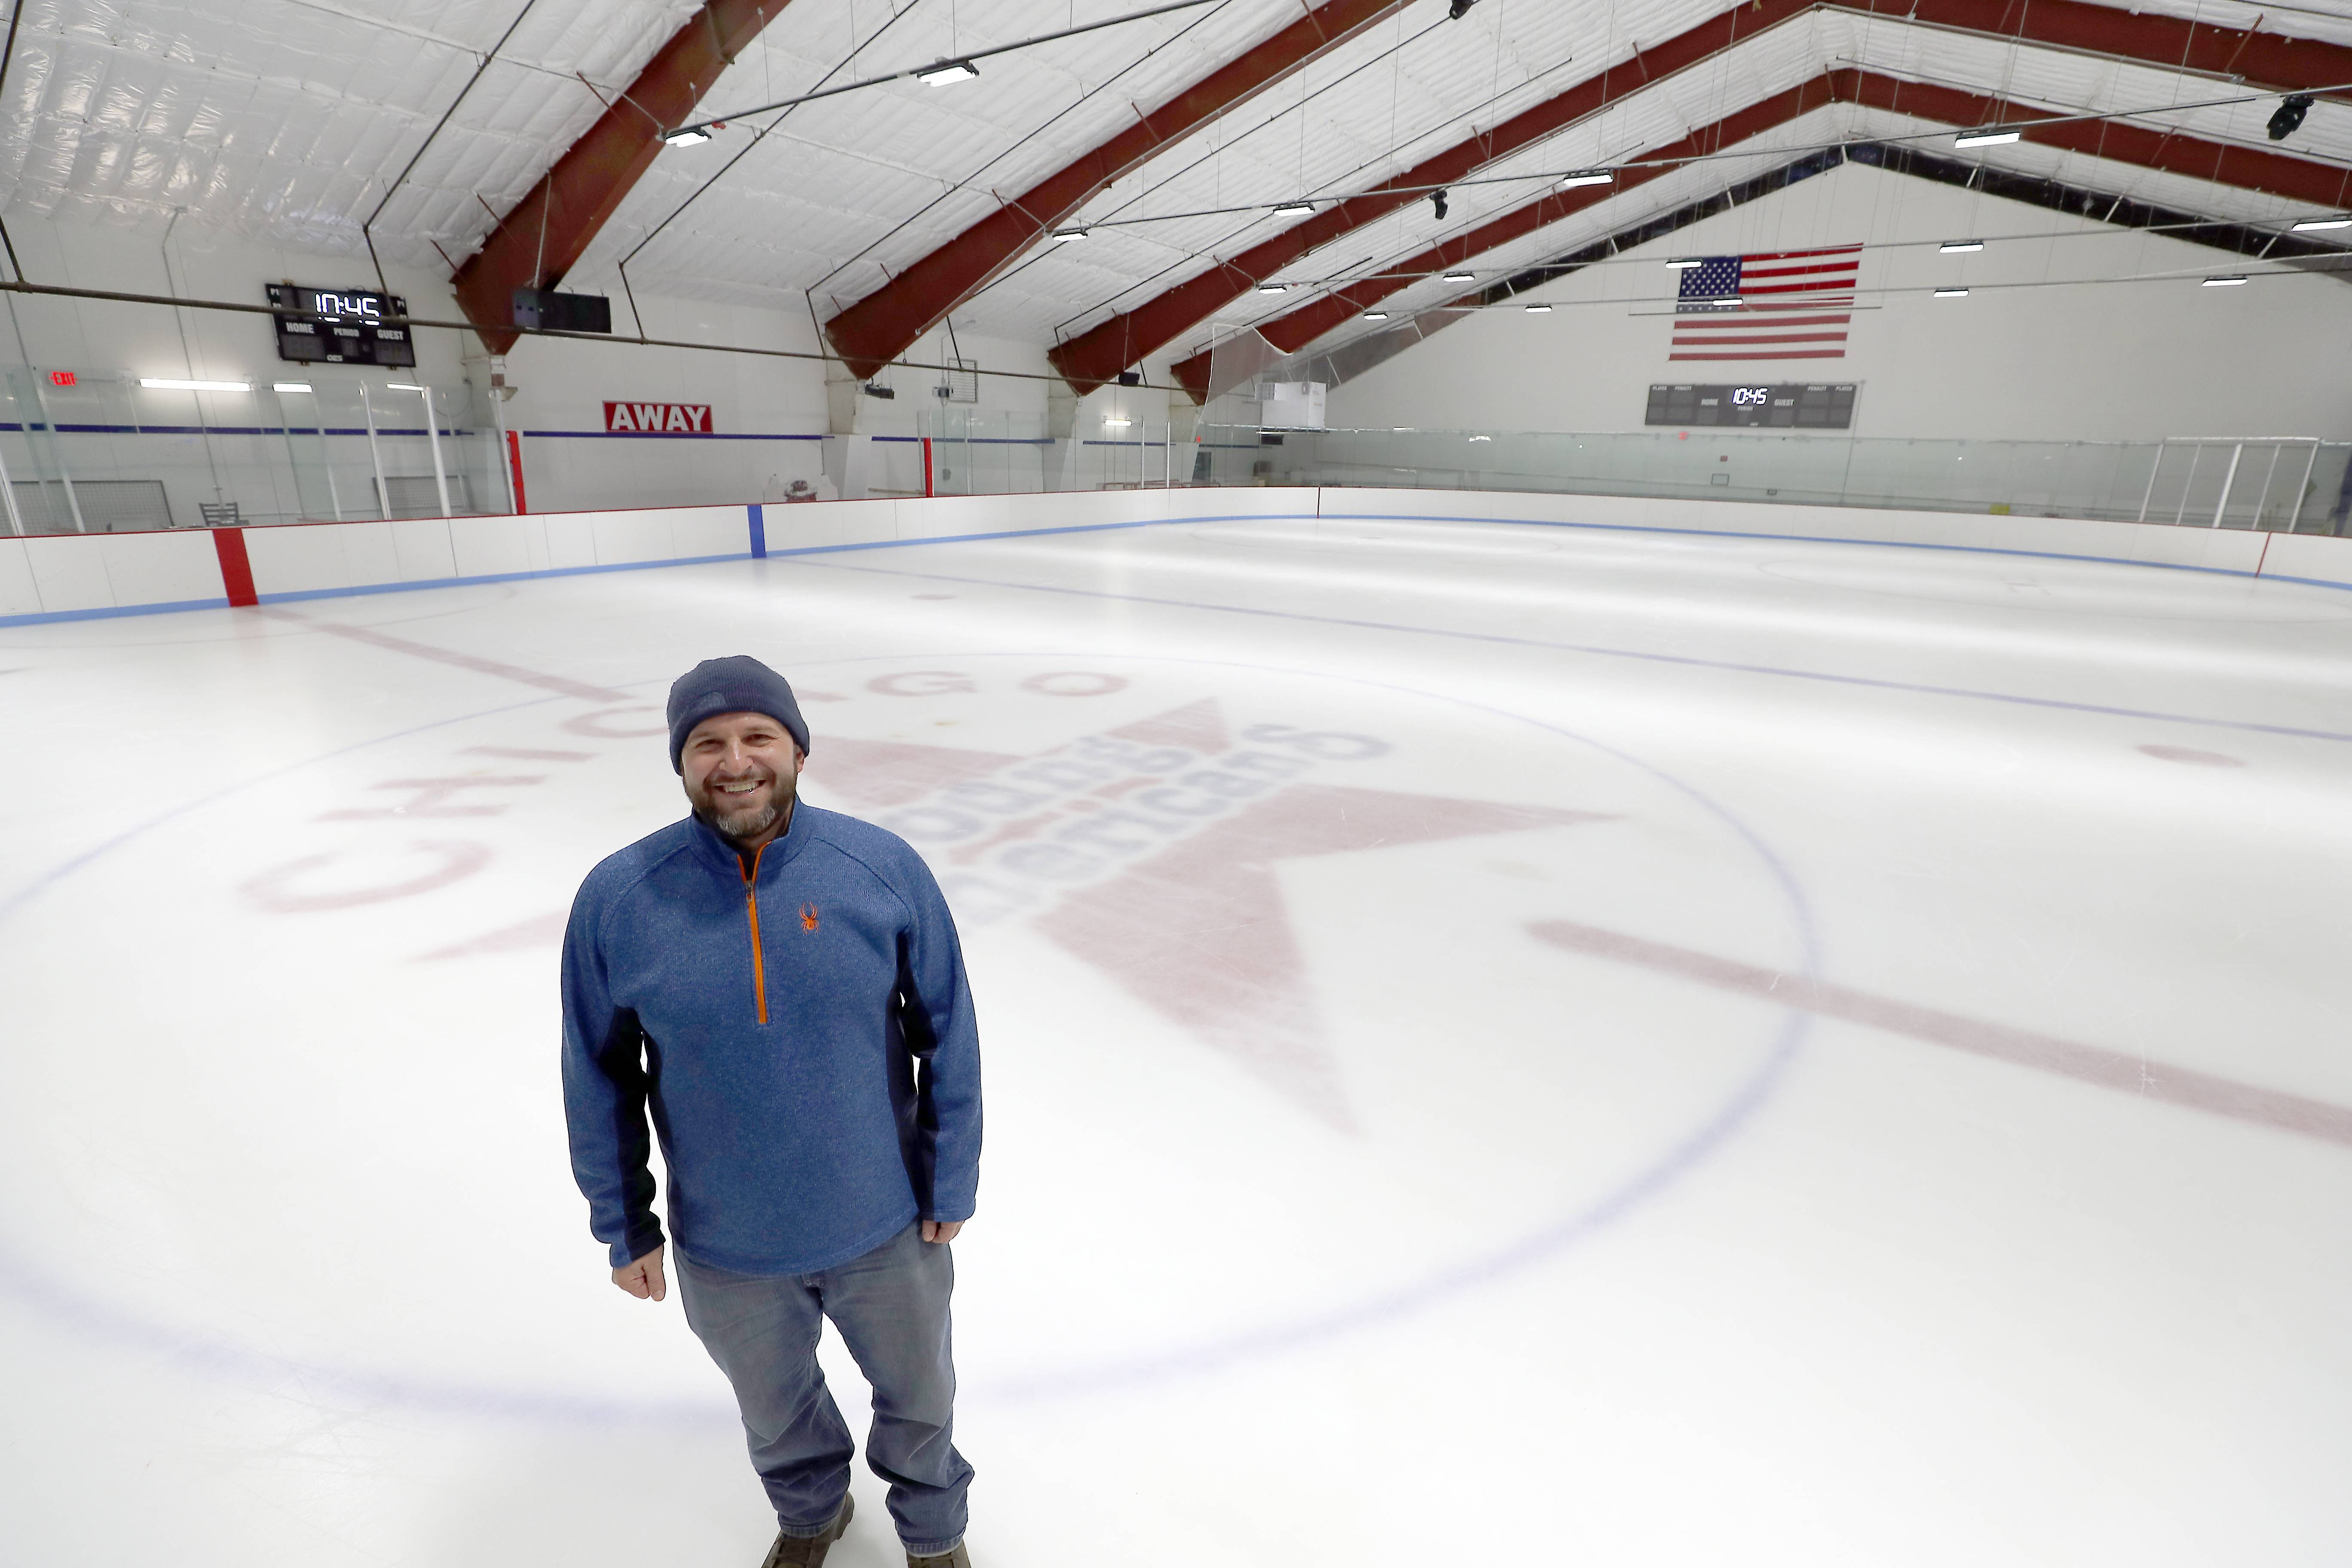 Chicago Young Americans President Jason Ori shows off the organization's Orbit Ice Arena in Palatine, which holds a grand opening Saturday. The arena is in the same building where Orbit Skate Center operated for 46 years until closing in March.